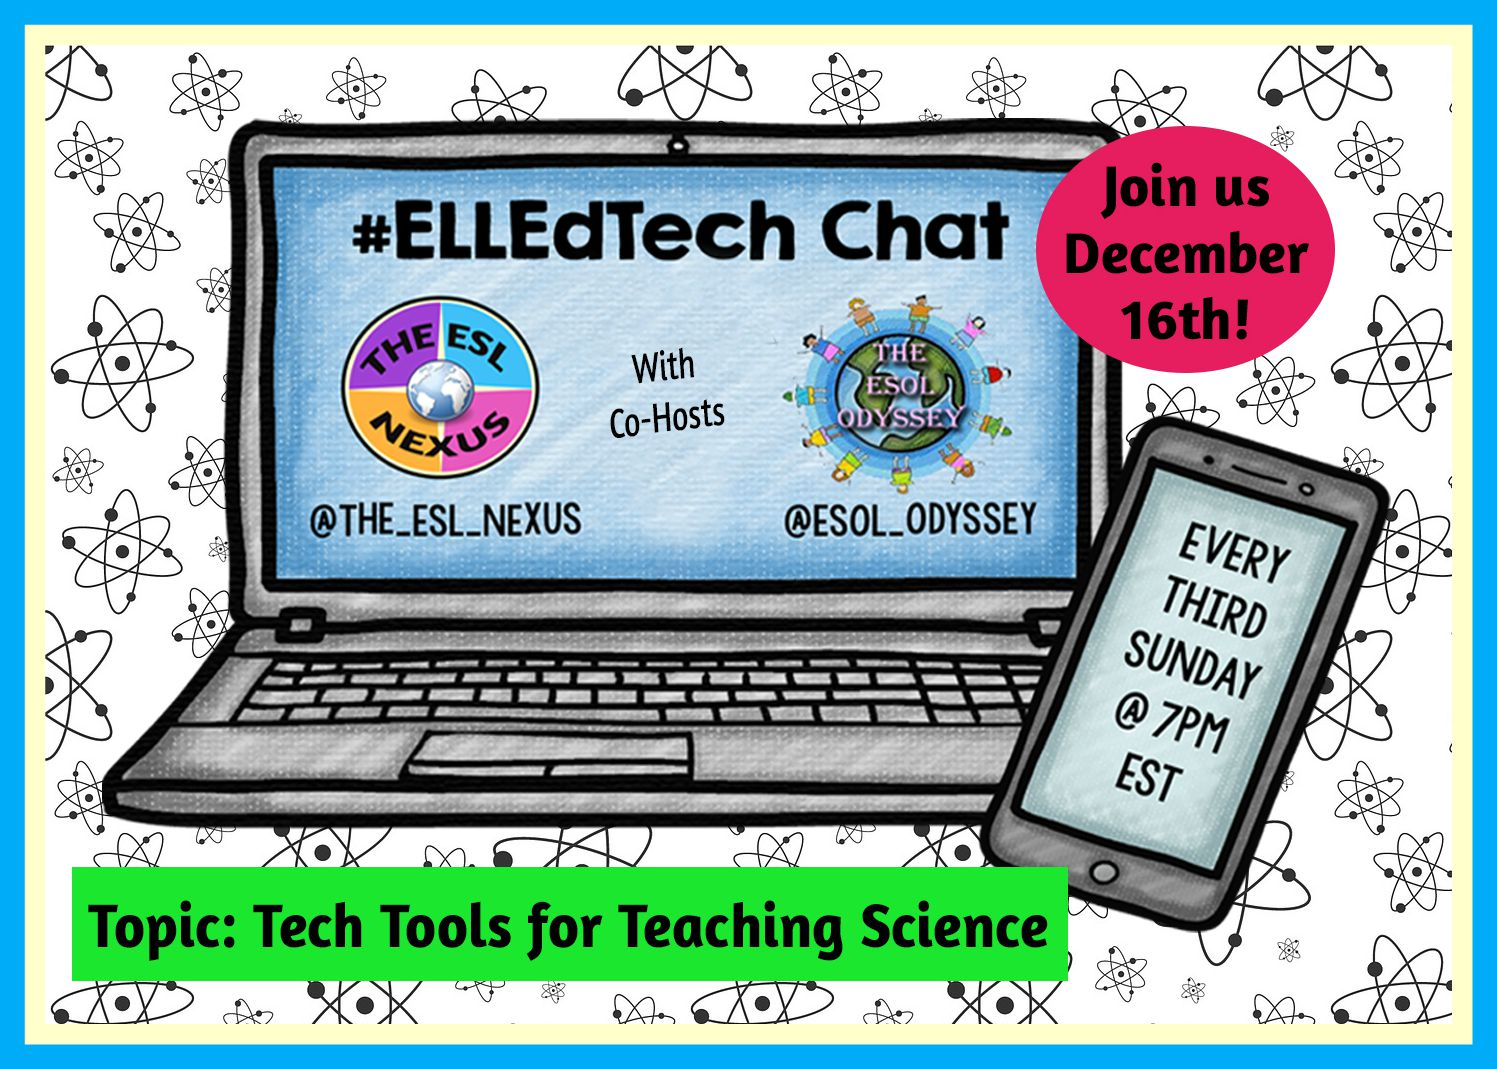 Come join the next #ELLEdTech Twitter chat on December 16h to discuss using Tech Tools to Teach Science! | The ESL Nexus